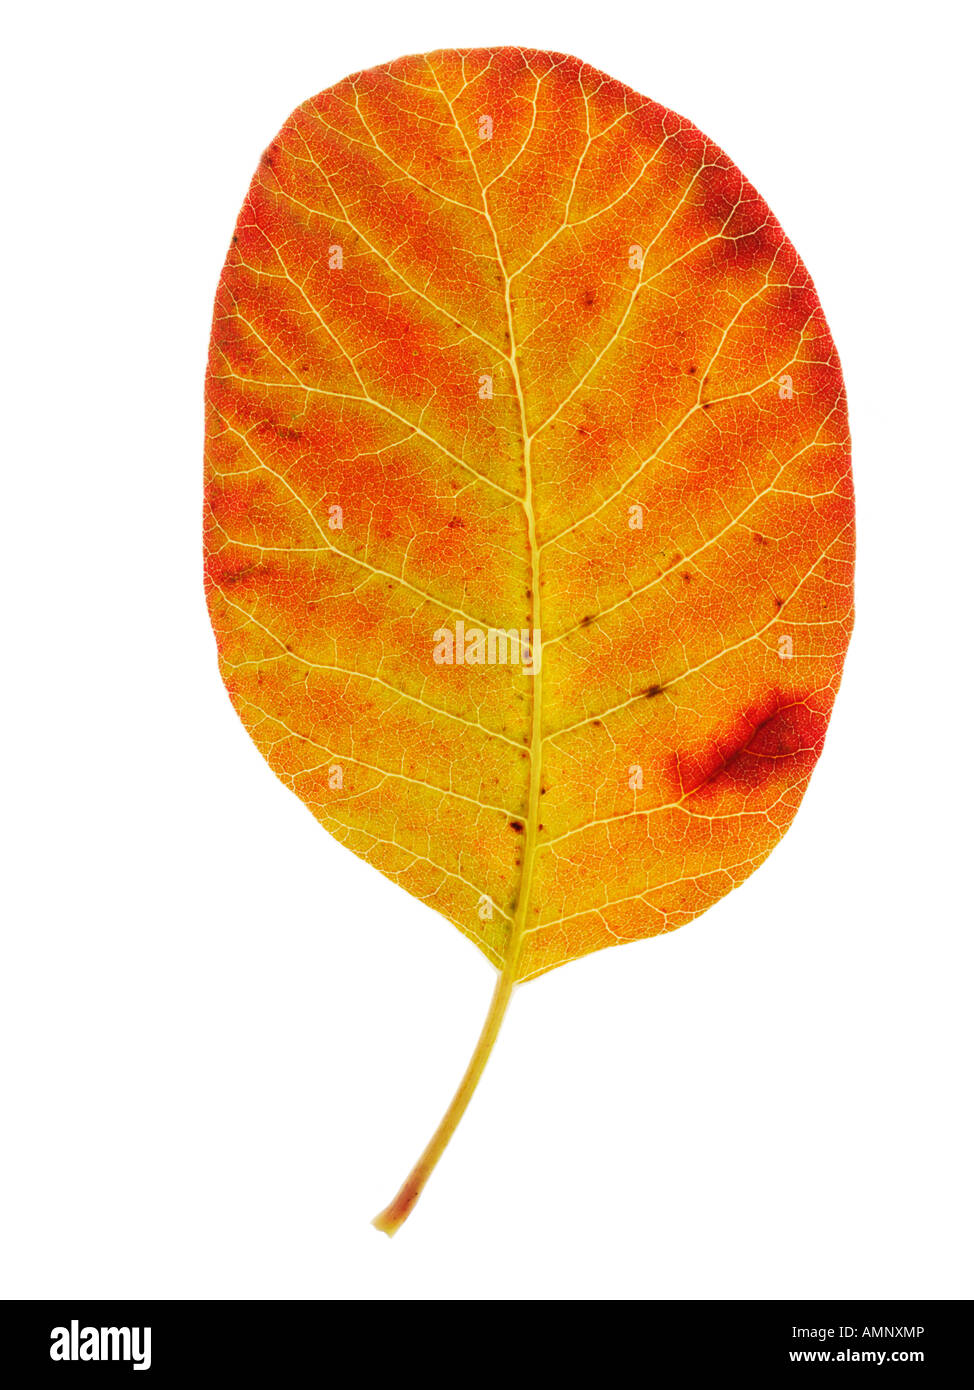 Individual single autumn Fall Leaf against white background. graphic image against white background for cutting - Stock Image